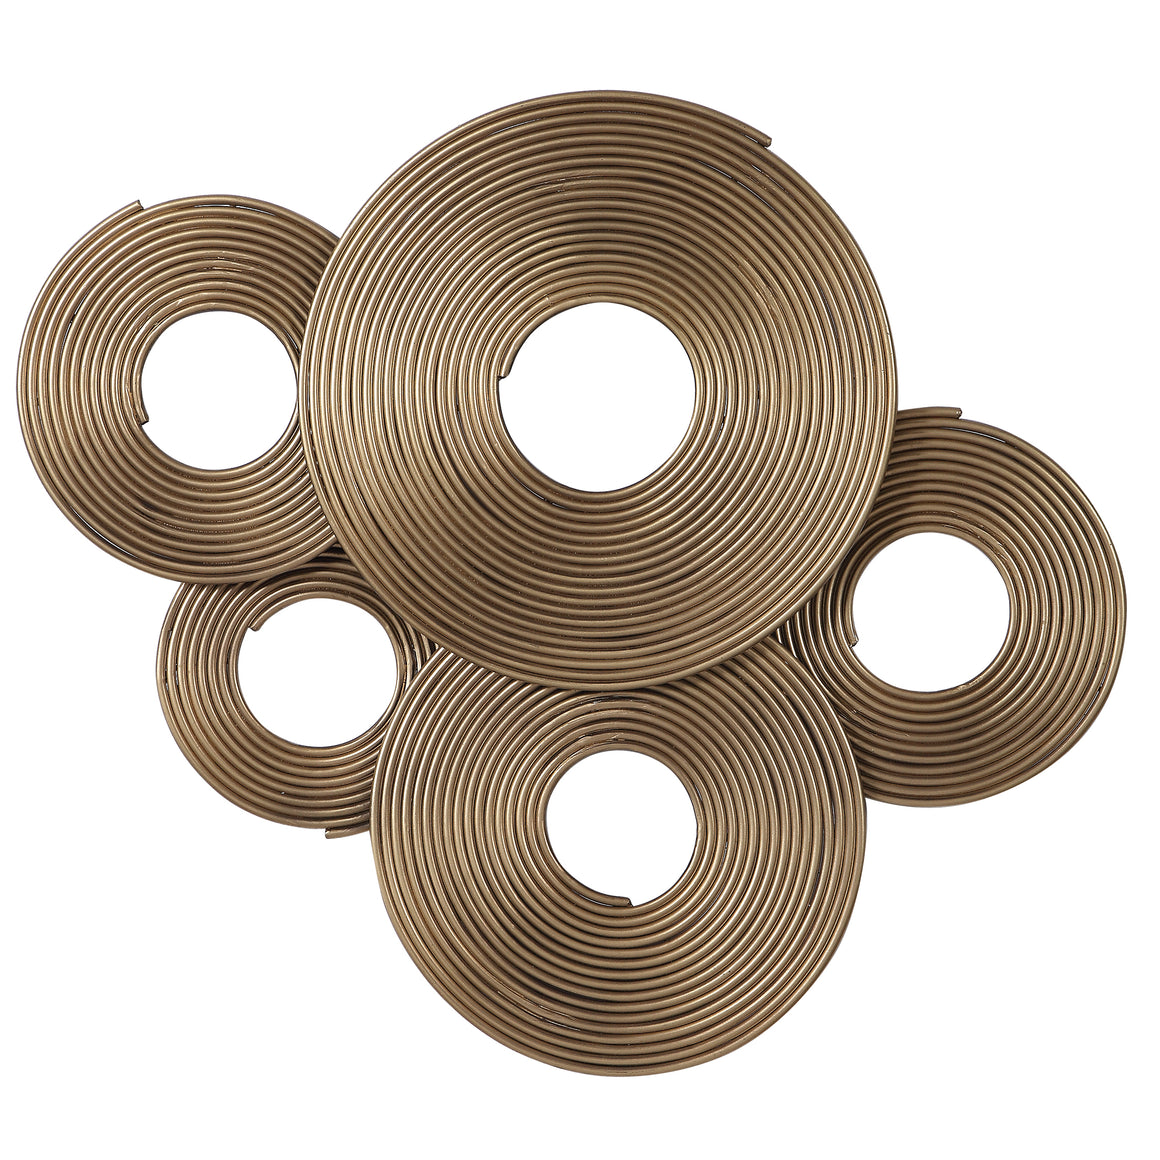 Ahmet Gold Rings Wall Decor